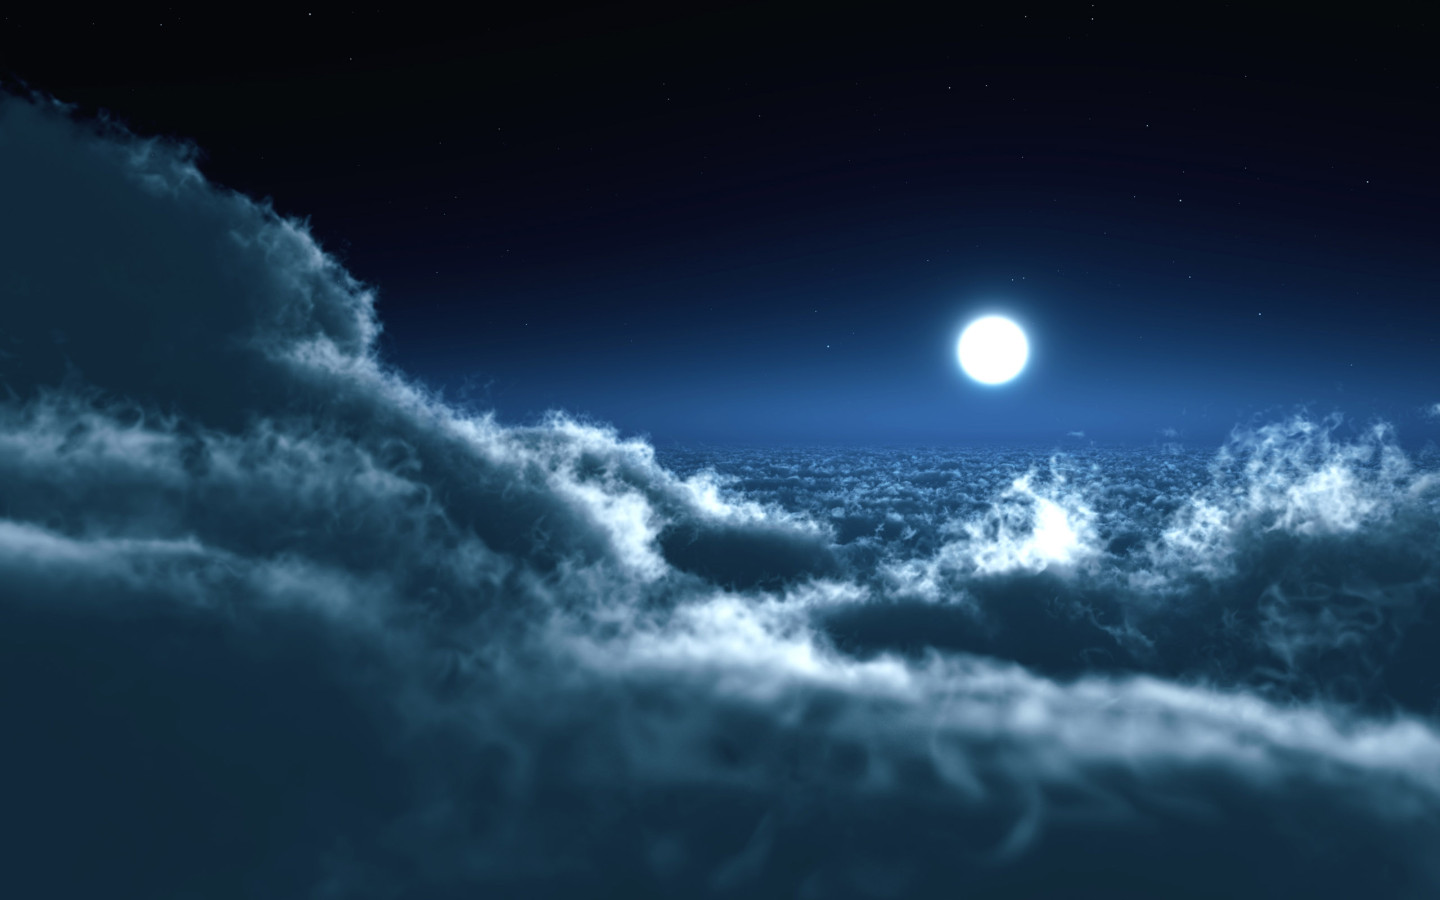 sky wallpaper night